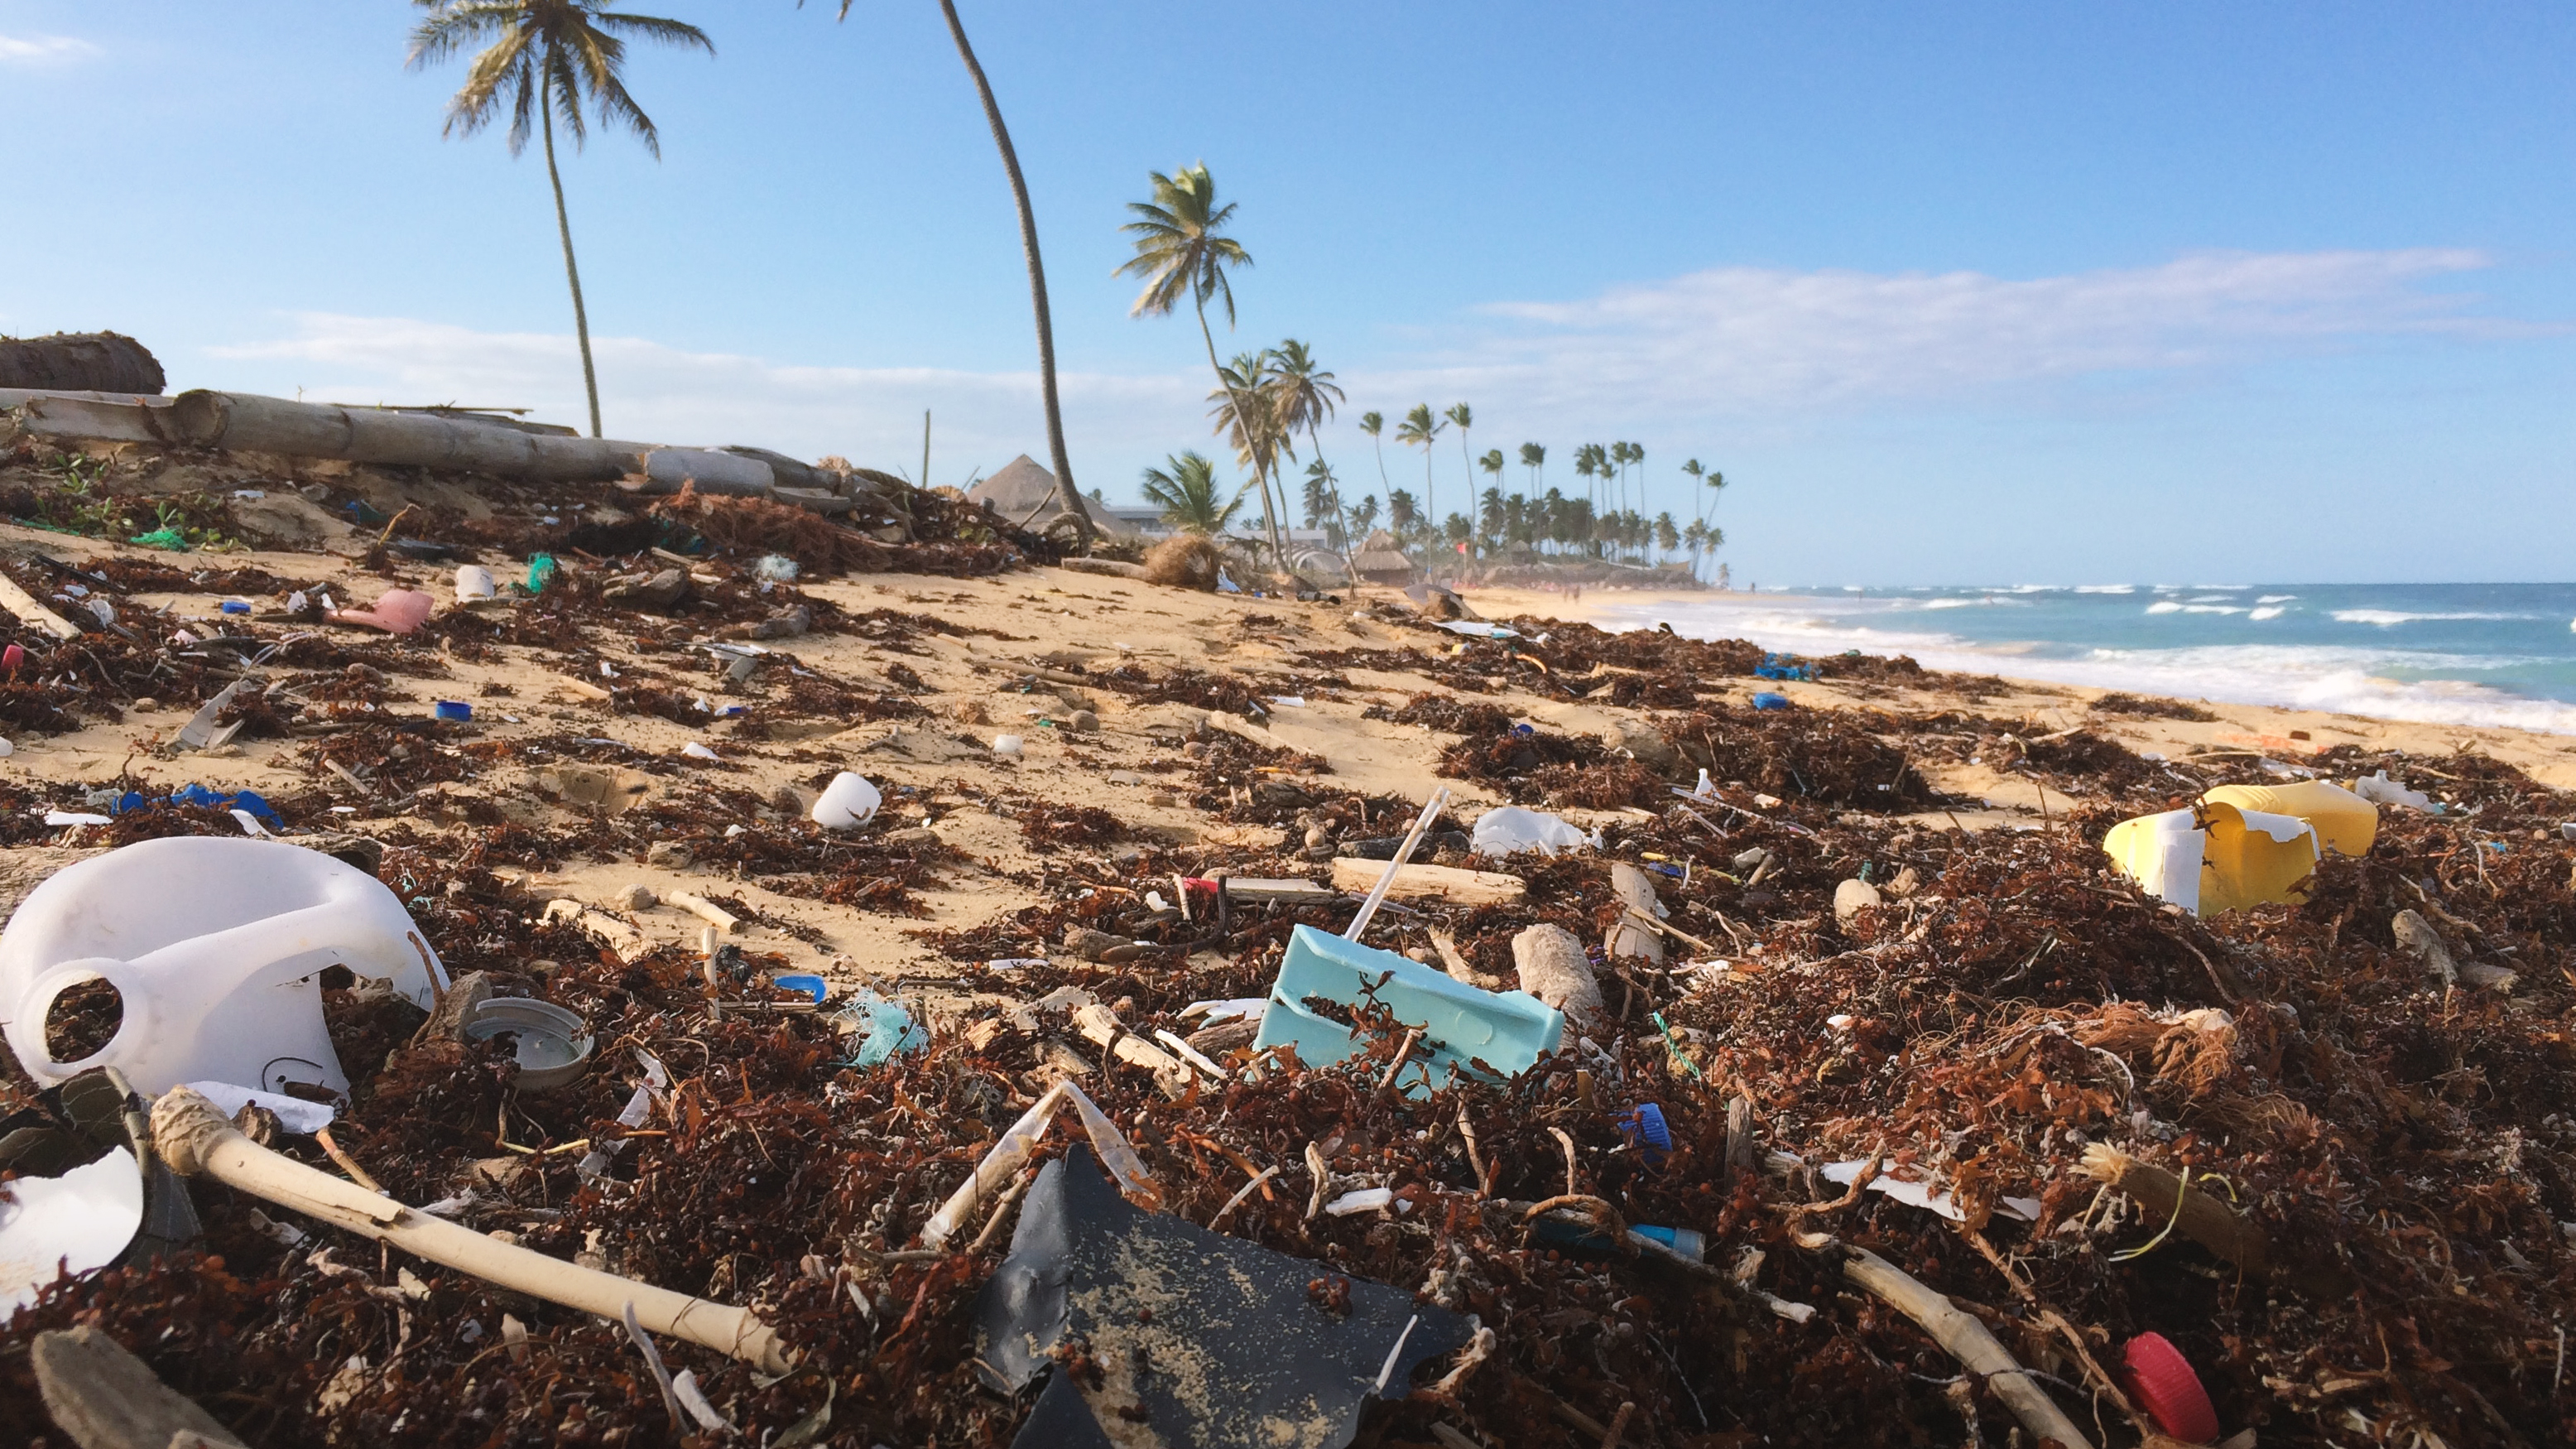 Image of a tropical beach with palm trees littered with seaweed and plastics.